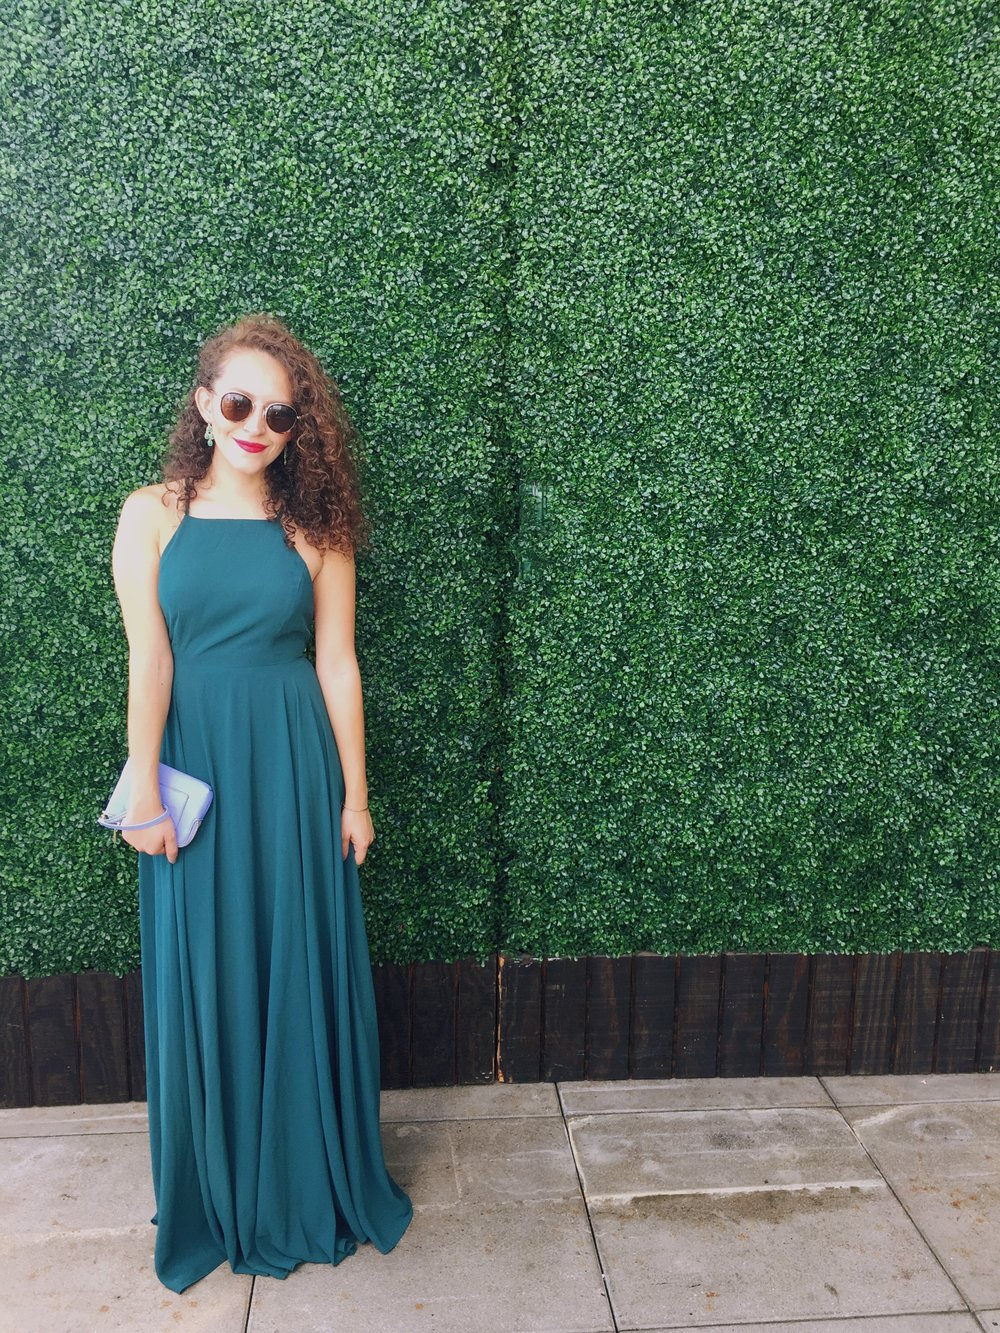 Floor length deep emerald green dress / formal wedding guest outfit